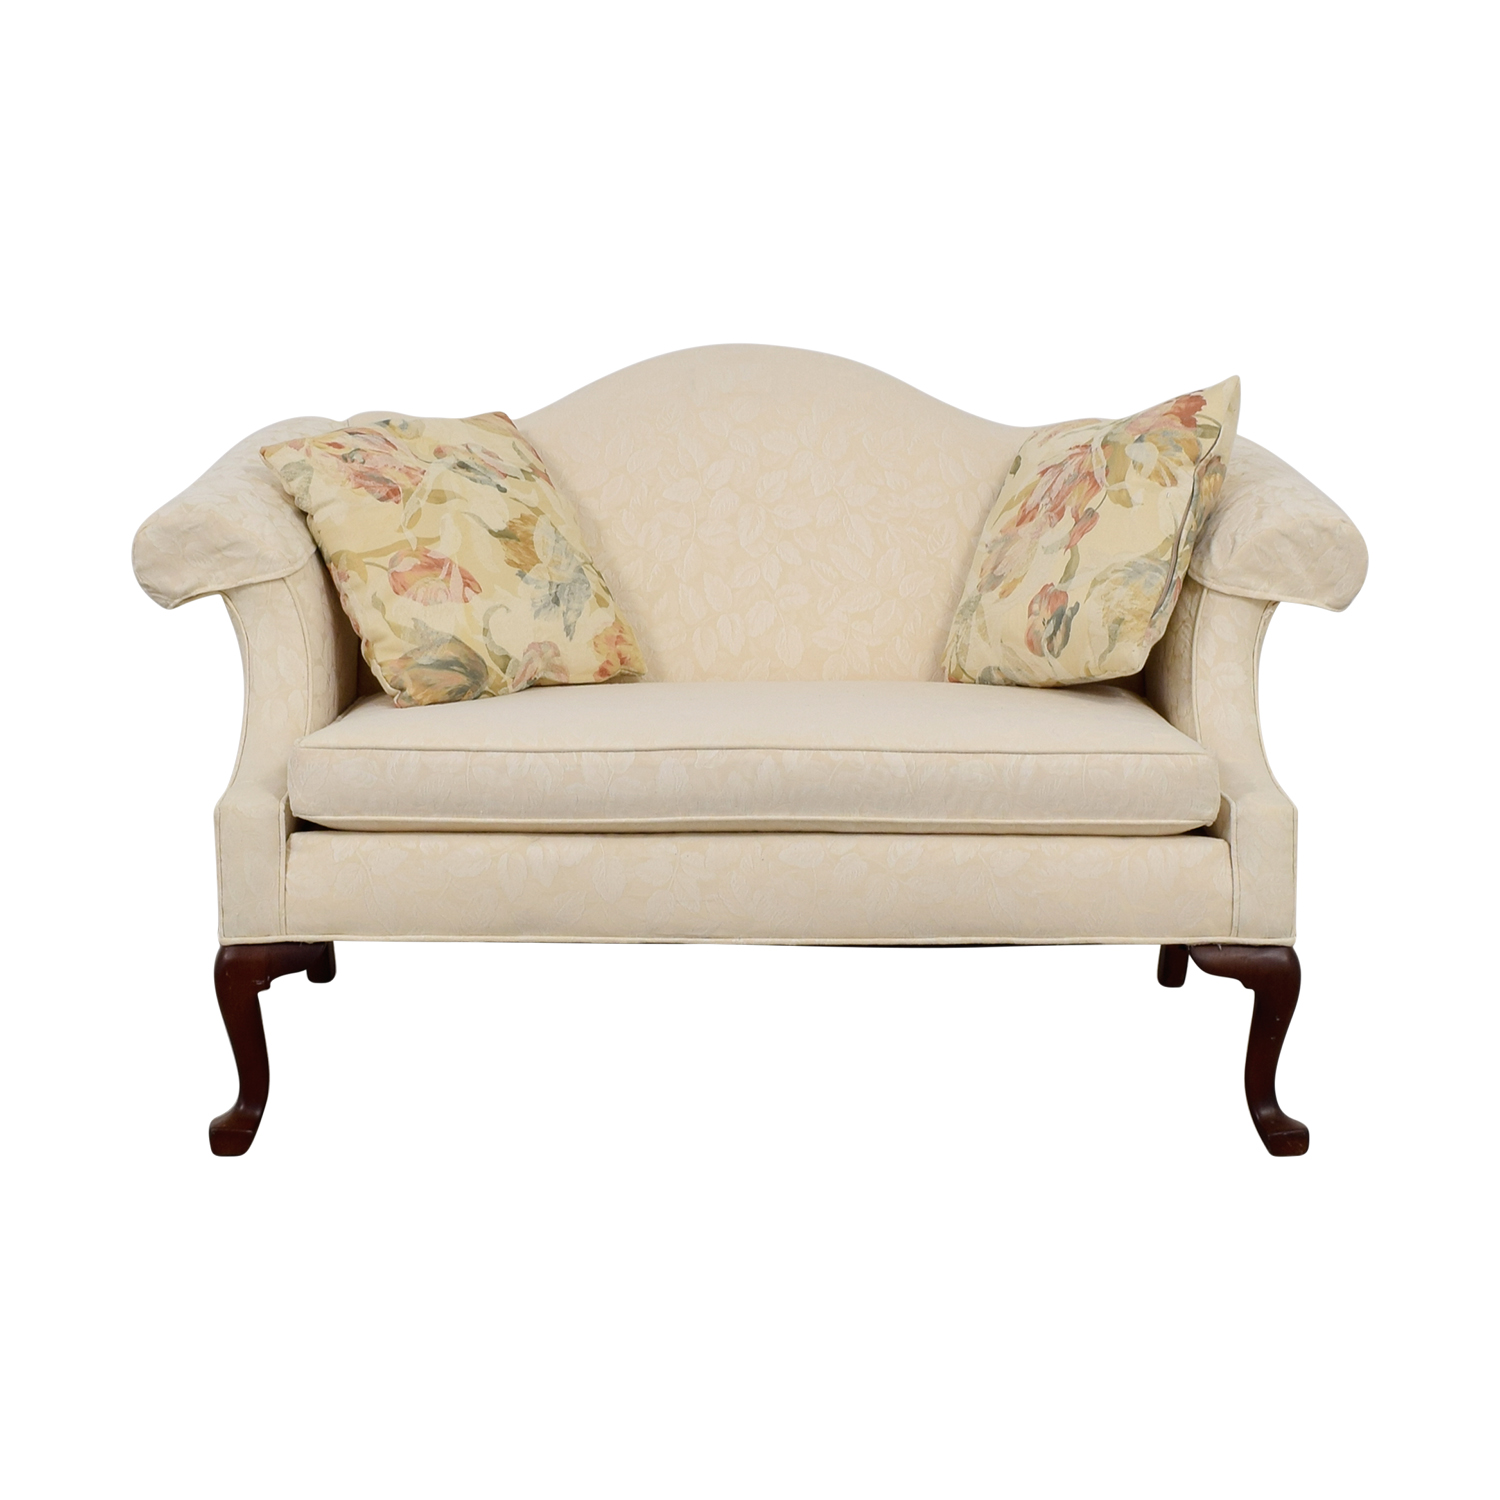 Ethan Allen White Love Seat with Floral Pillows Ethan Allen